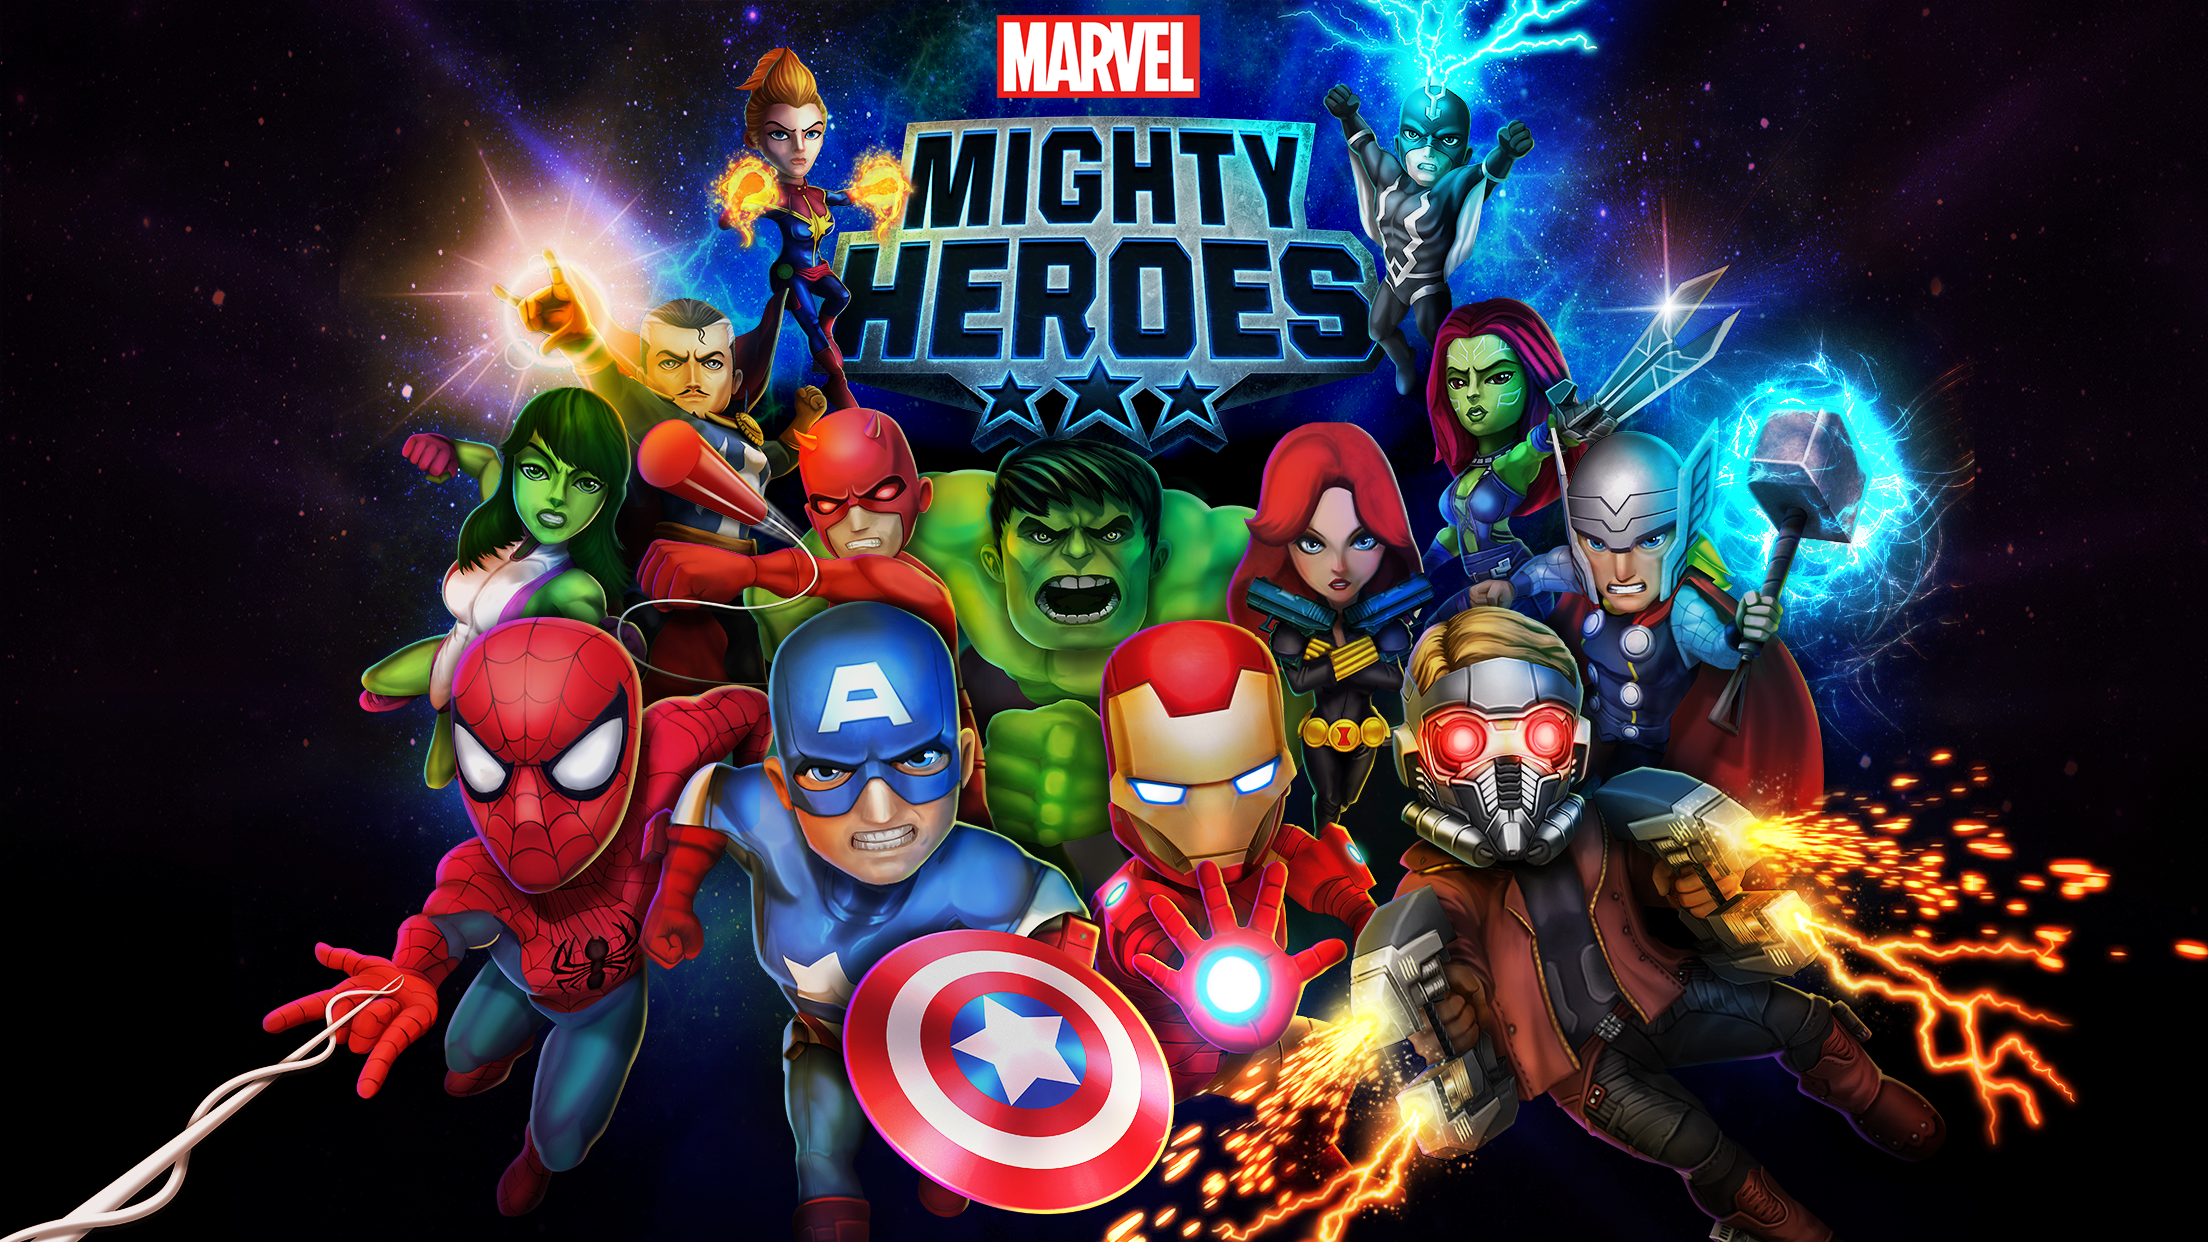 Marvel Mighty Heroes | Announcement Trailer